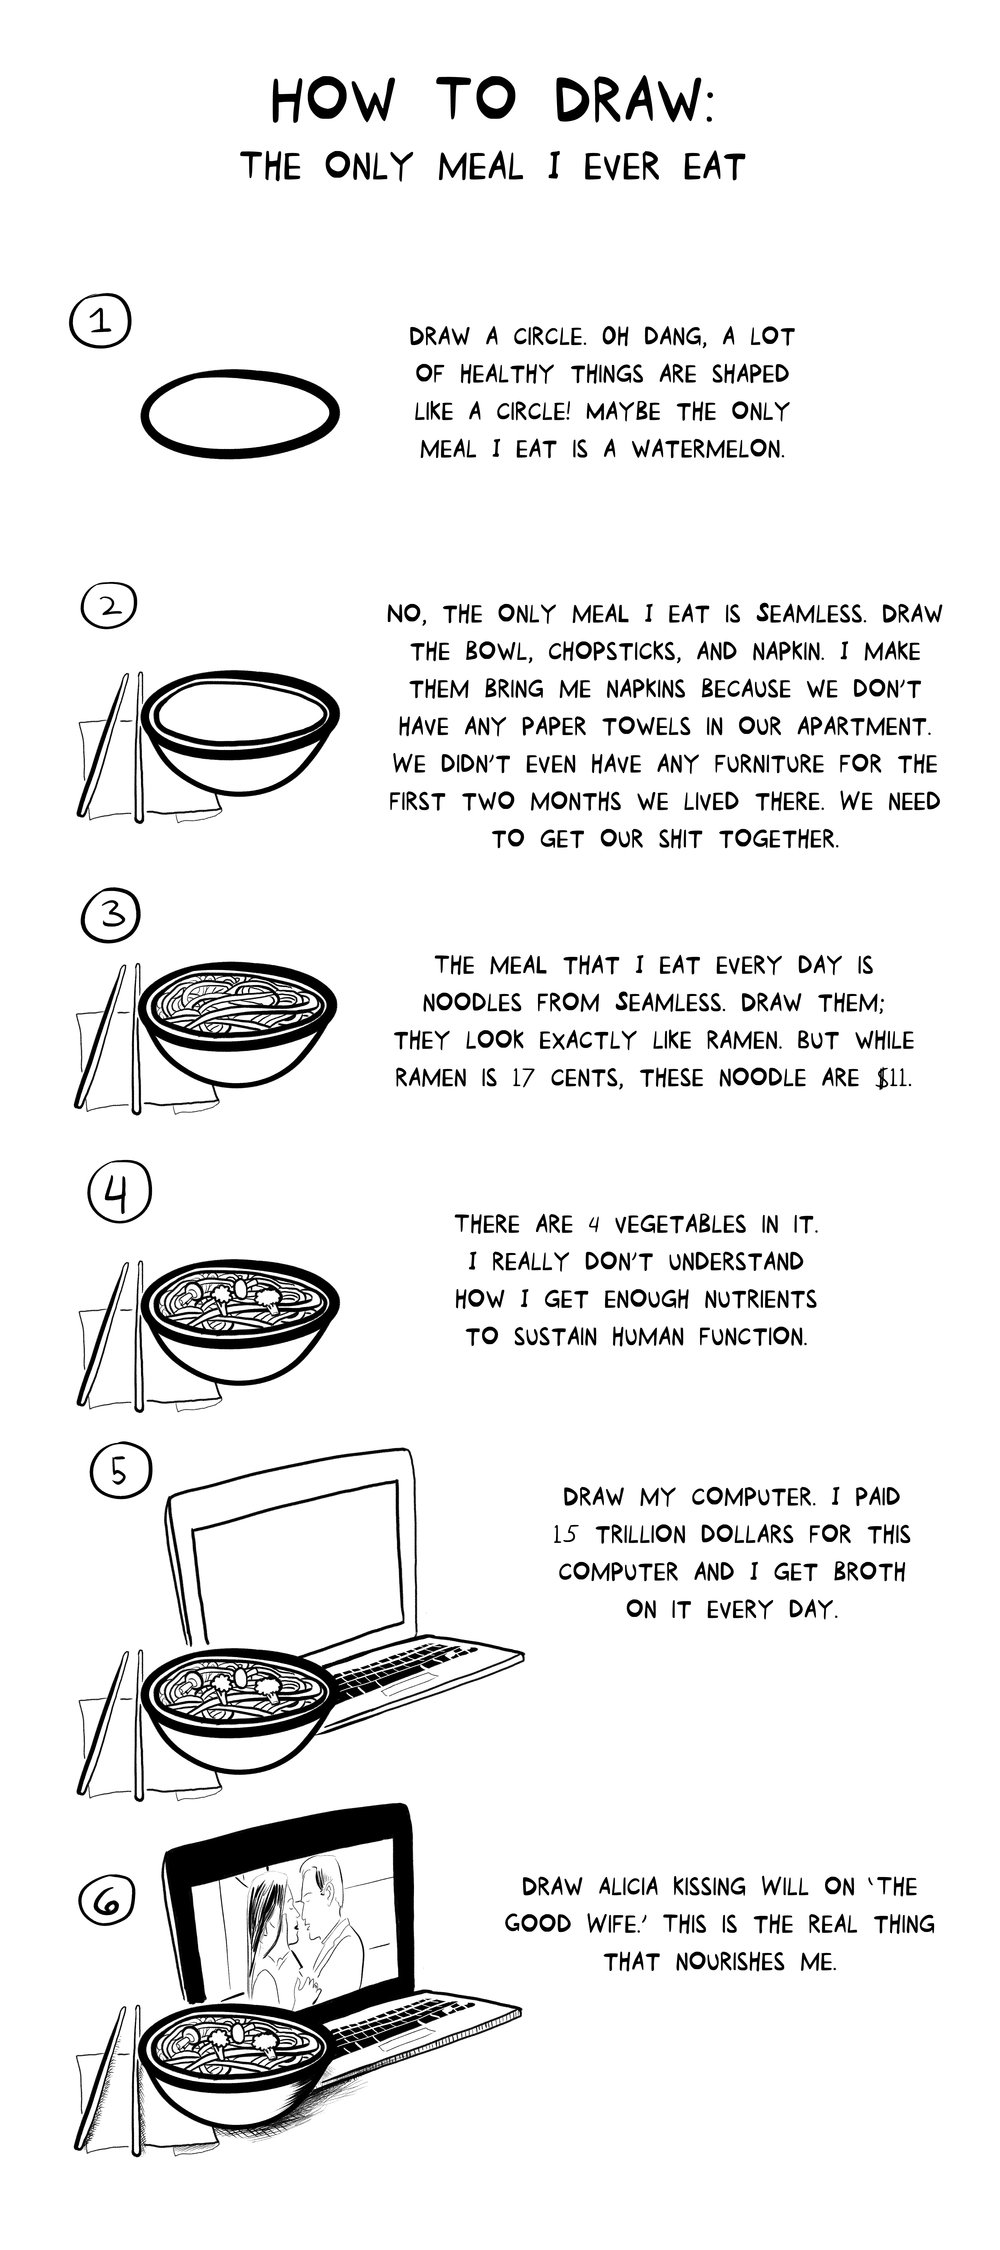 How To Draw: The Only Meal I Ever Eat